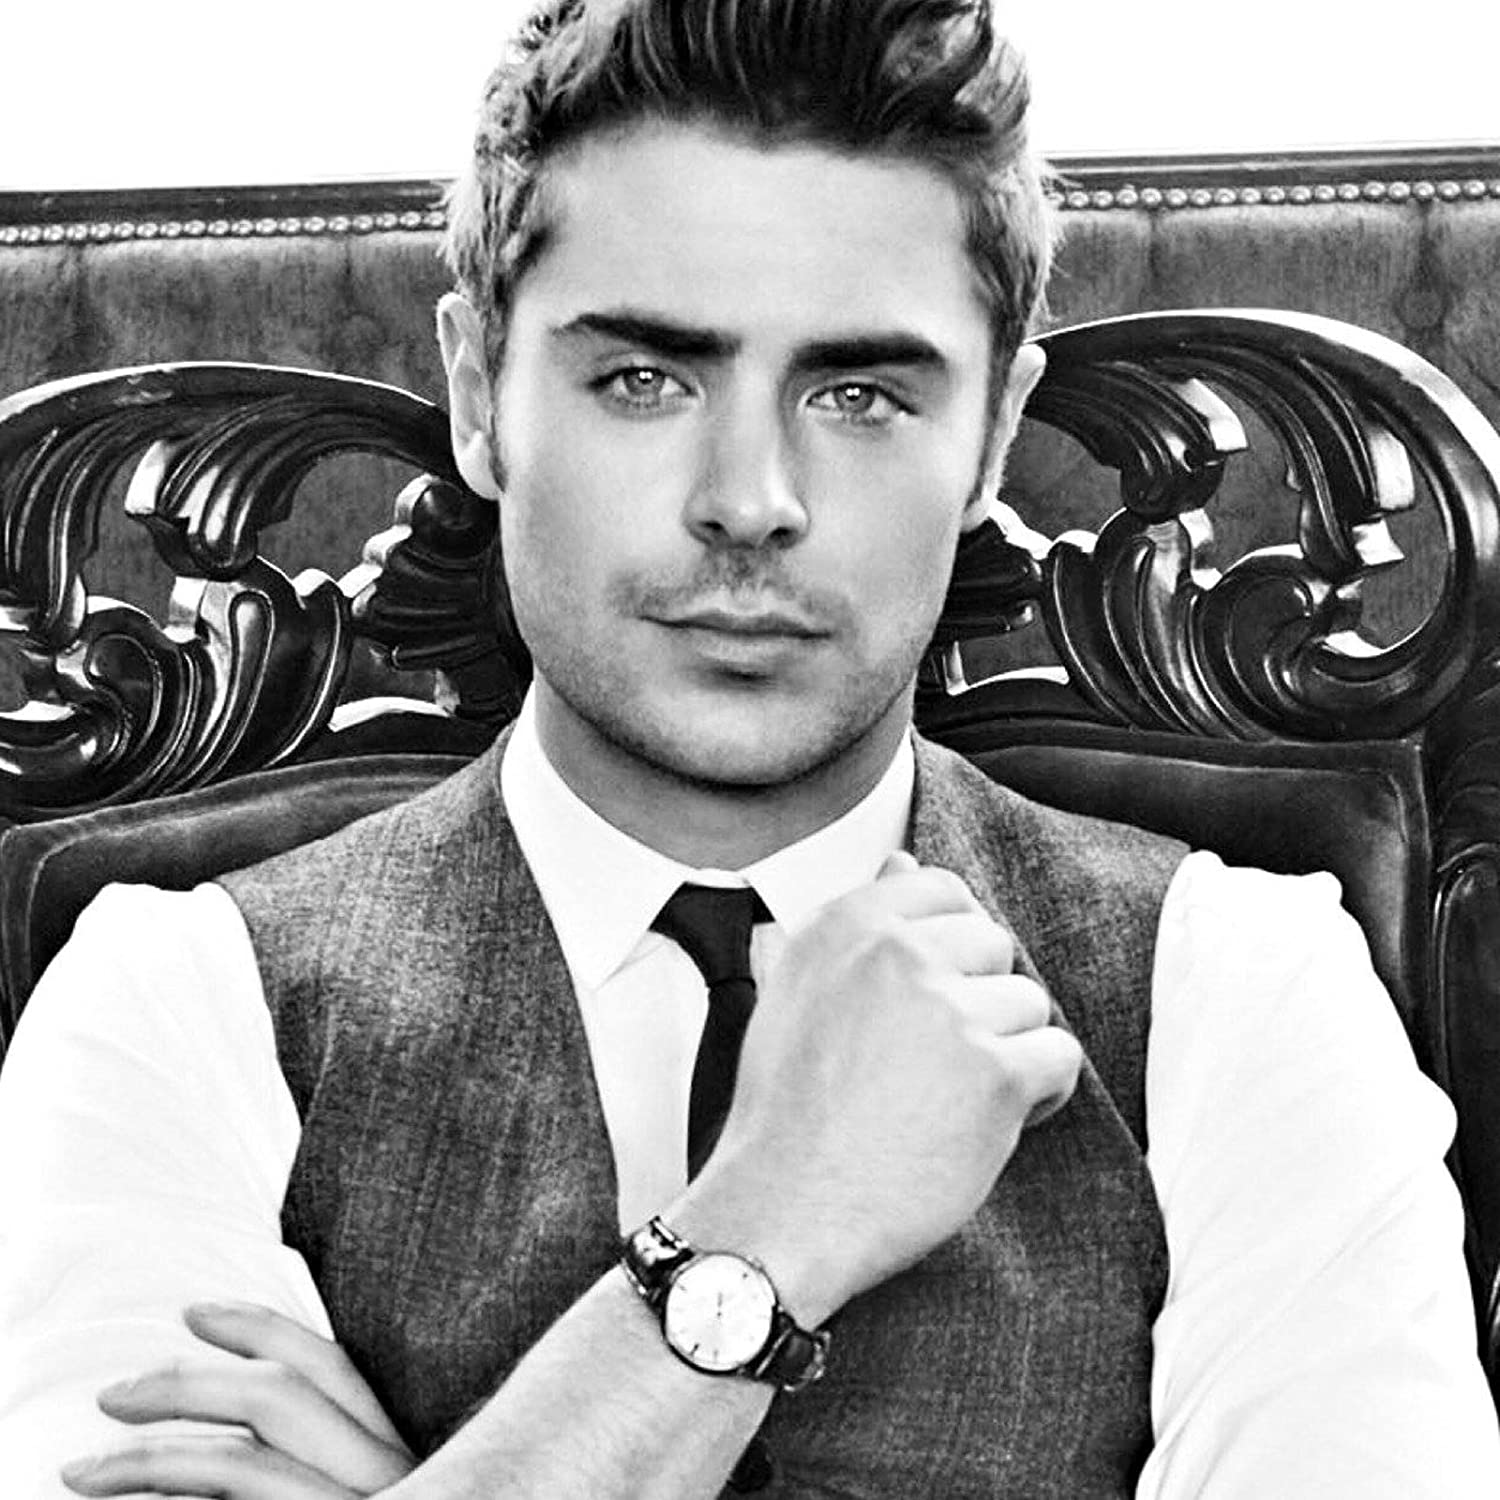 Print 12 X 18 Inch Ultra HD Multicolour Unframed Rolled Great Wall D/écor Unique Poster/'s Actor Zac Efron Poster